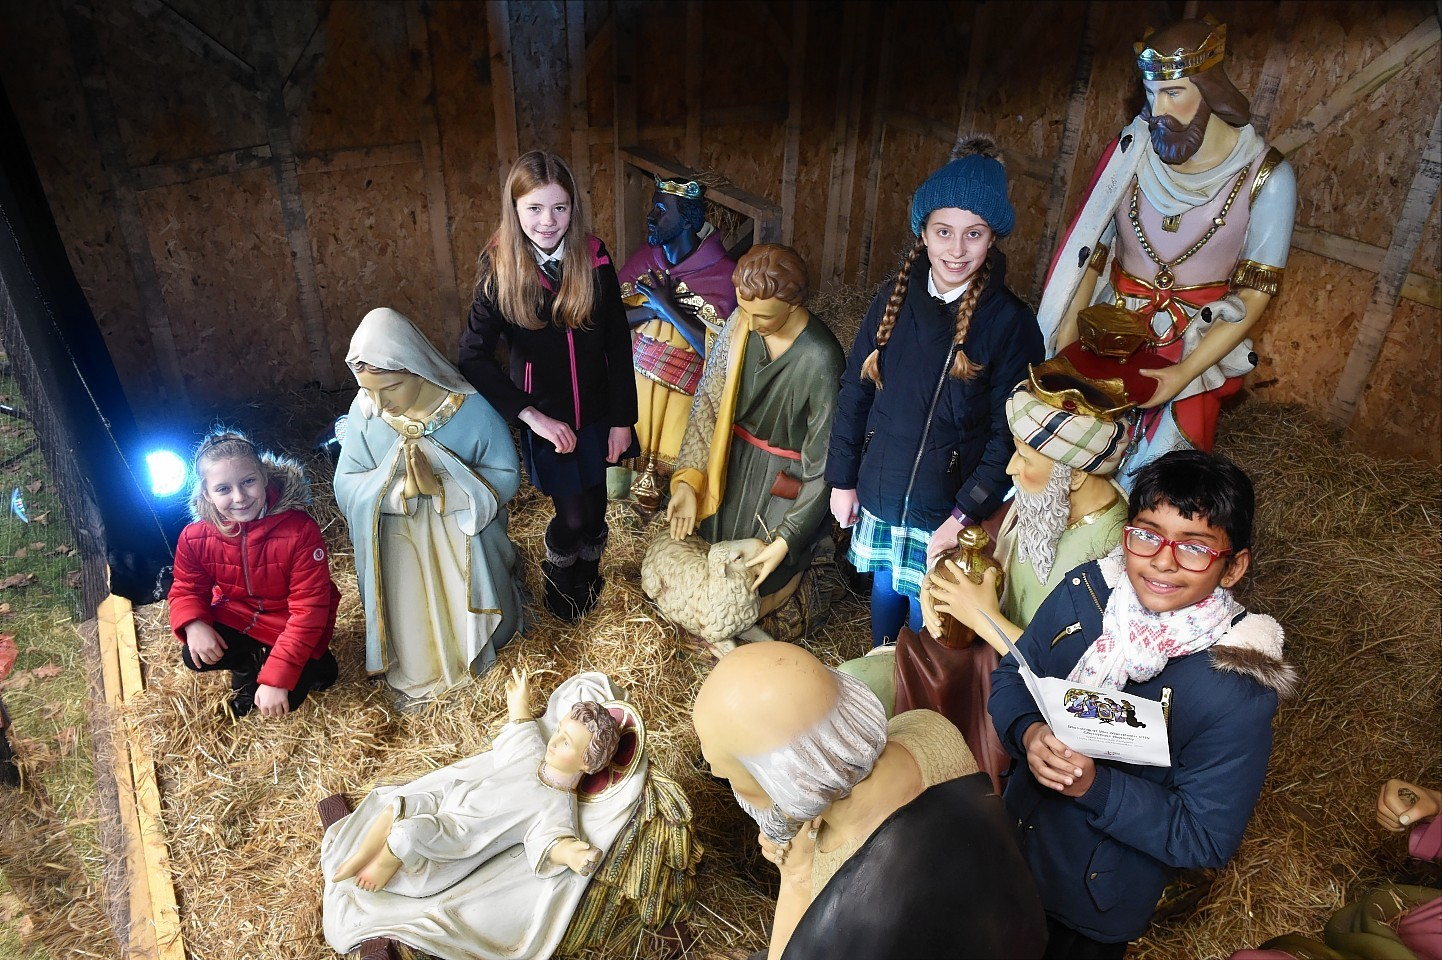 The blessing of the Aberdeen City Christmas Nativity was held at the Saint Nicholas Kirkyard.